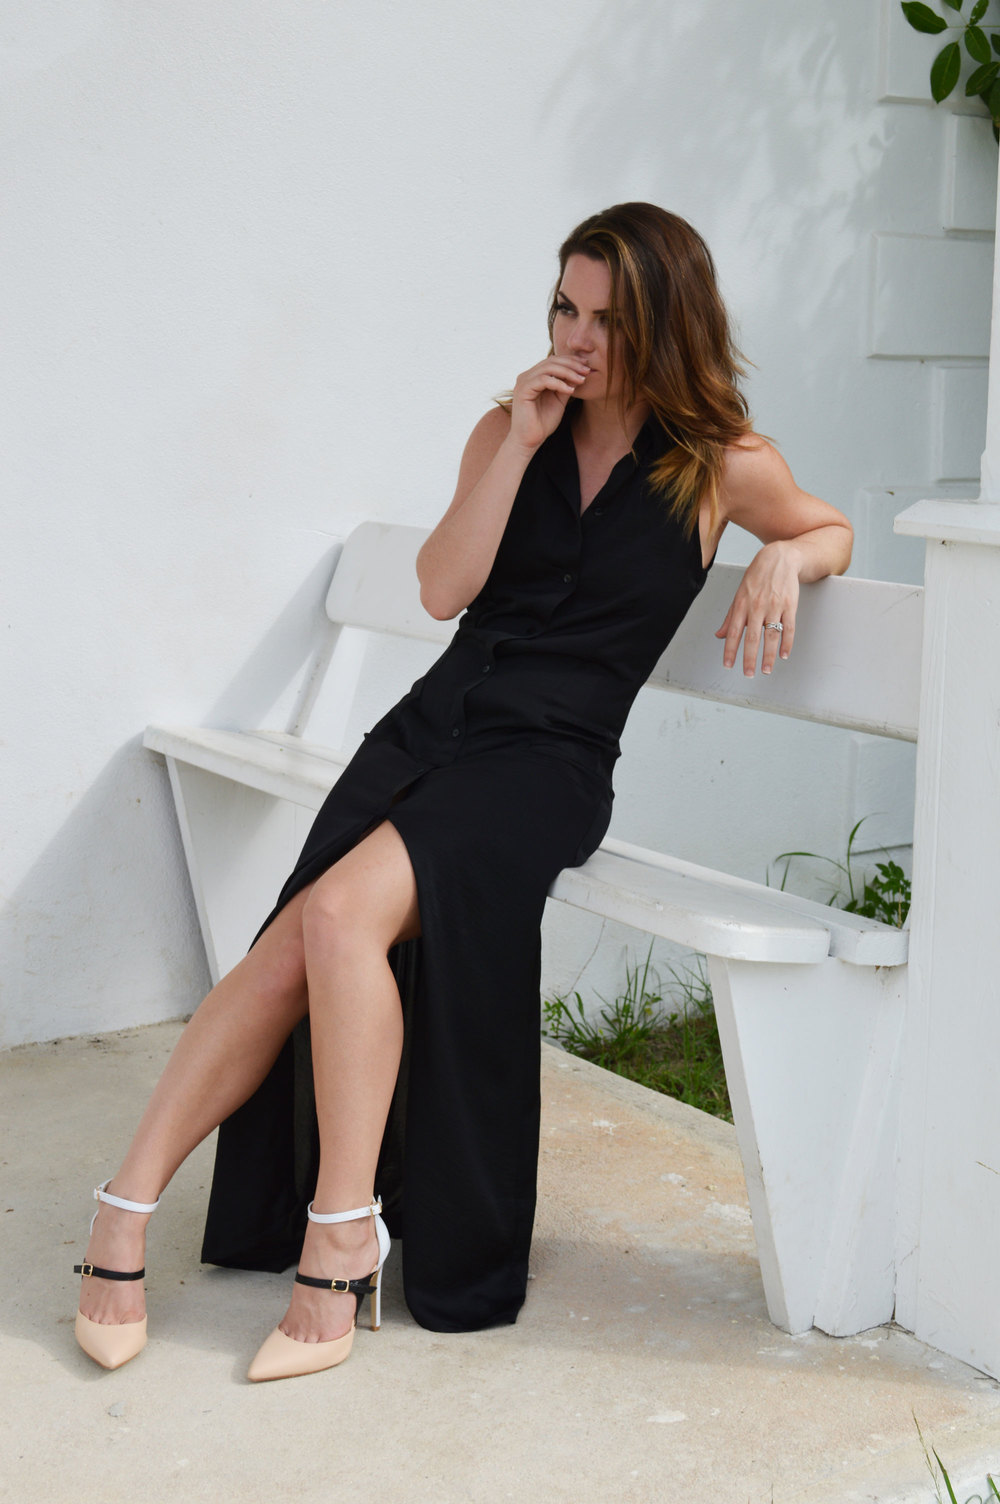 Trybe-ShoeDazzle-Angeni-heels-black-silk-dress-style-blogger-nassau-bahamas-miami-florida.jpeg